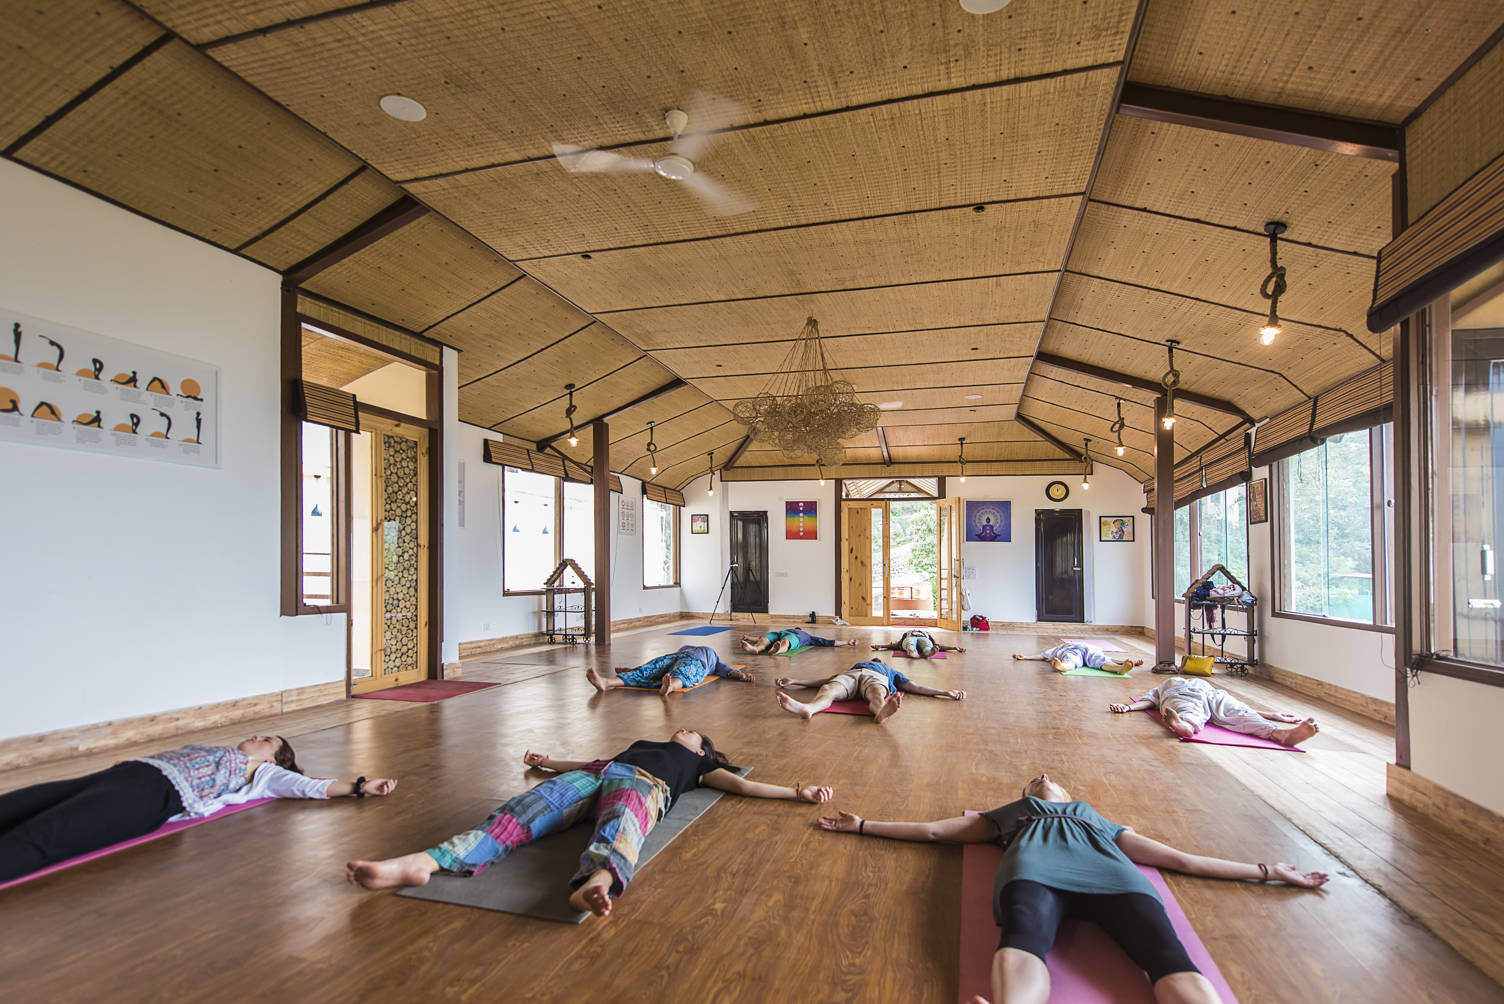 Veda5 Ayurveda Yoga Luxury Destination Retreat Rishikesh Himalayas India International